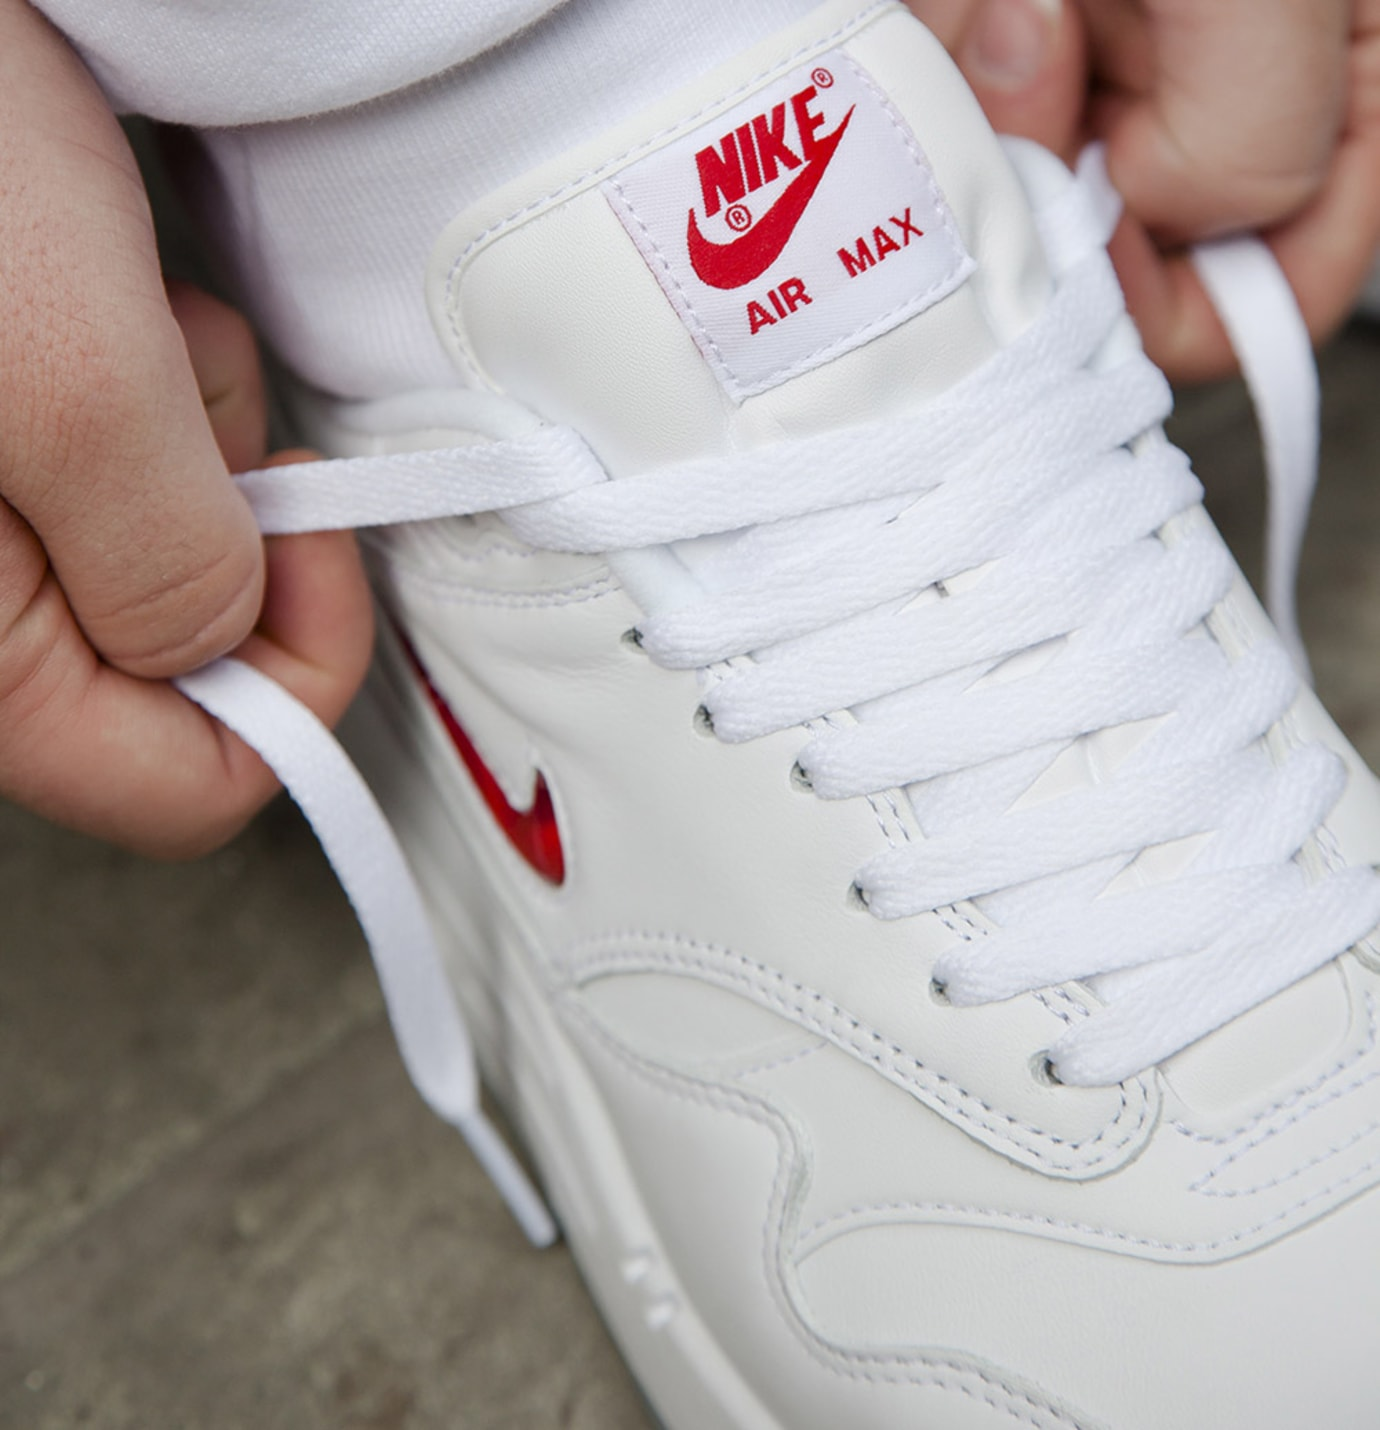 Nike Air Max 1 Jewel White Red Tongue